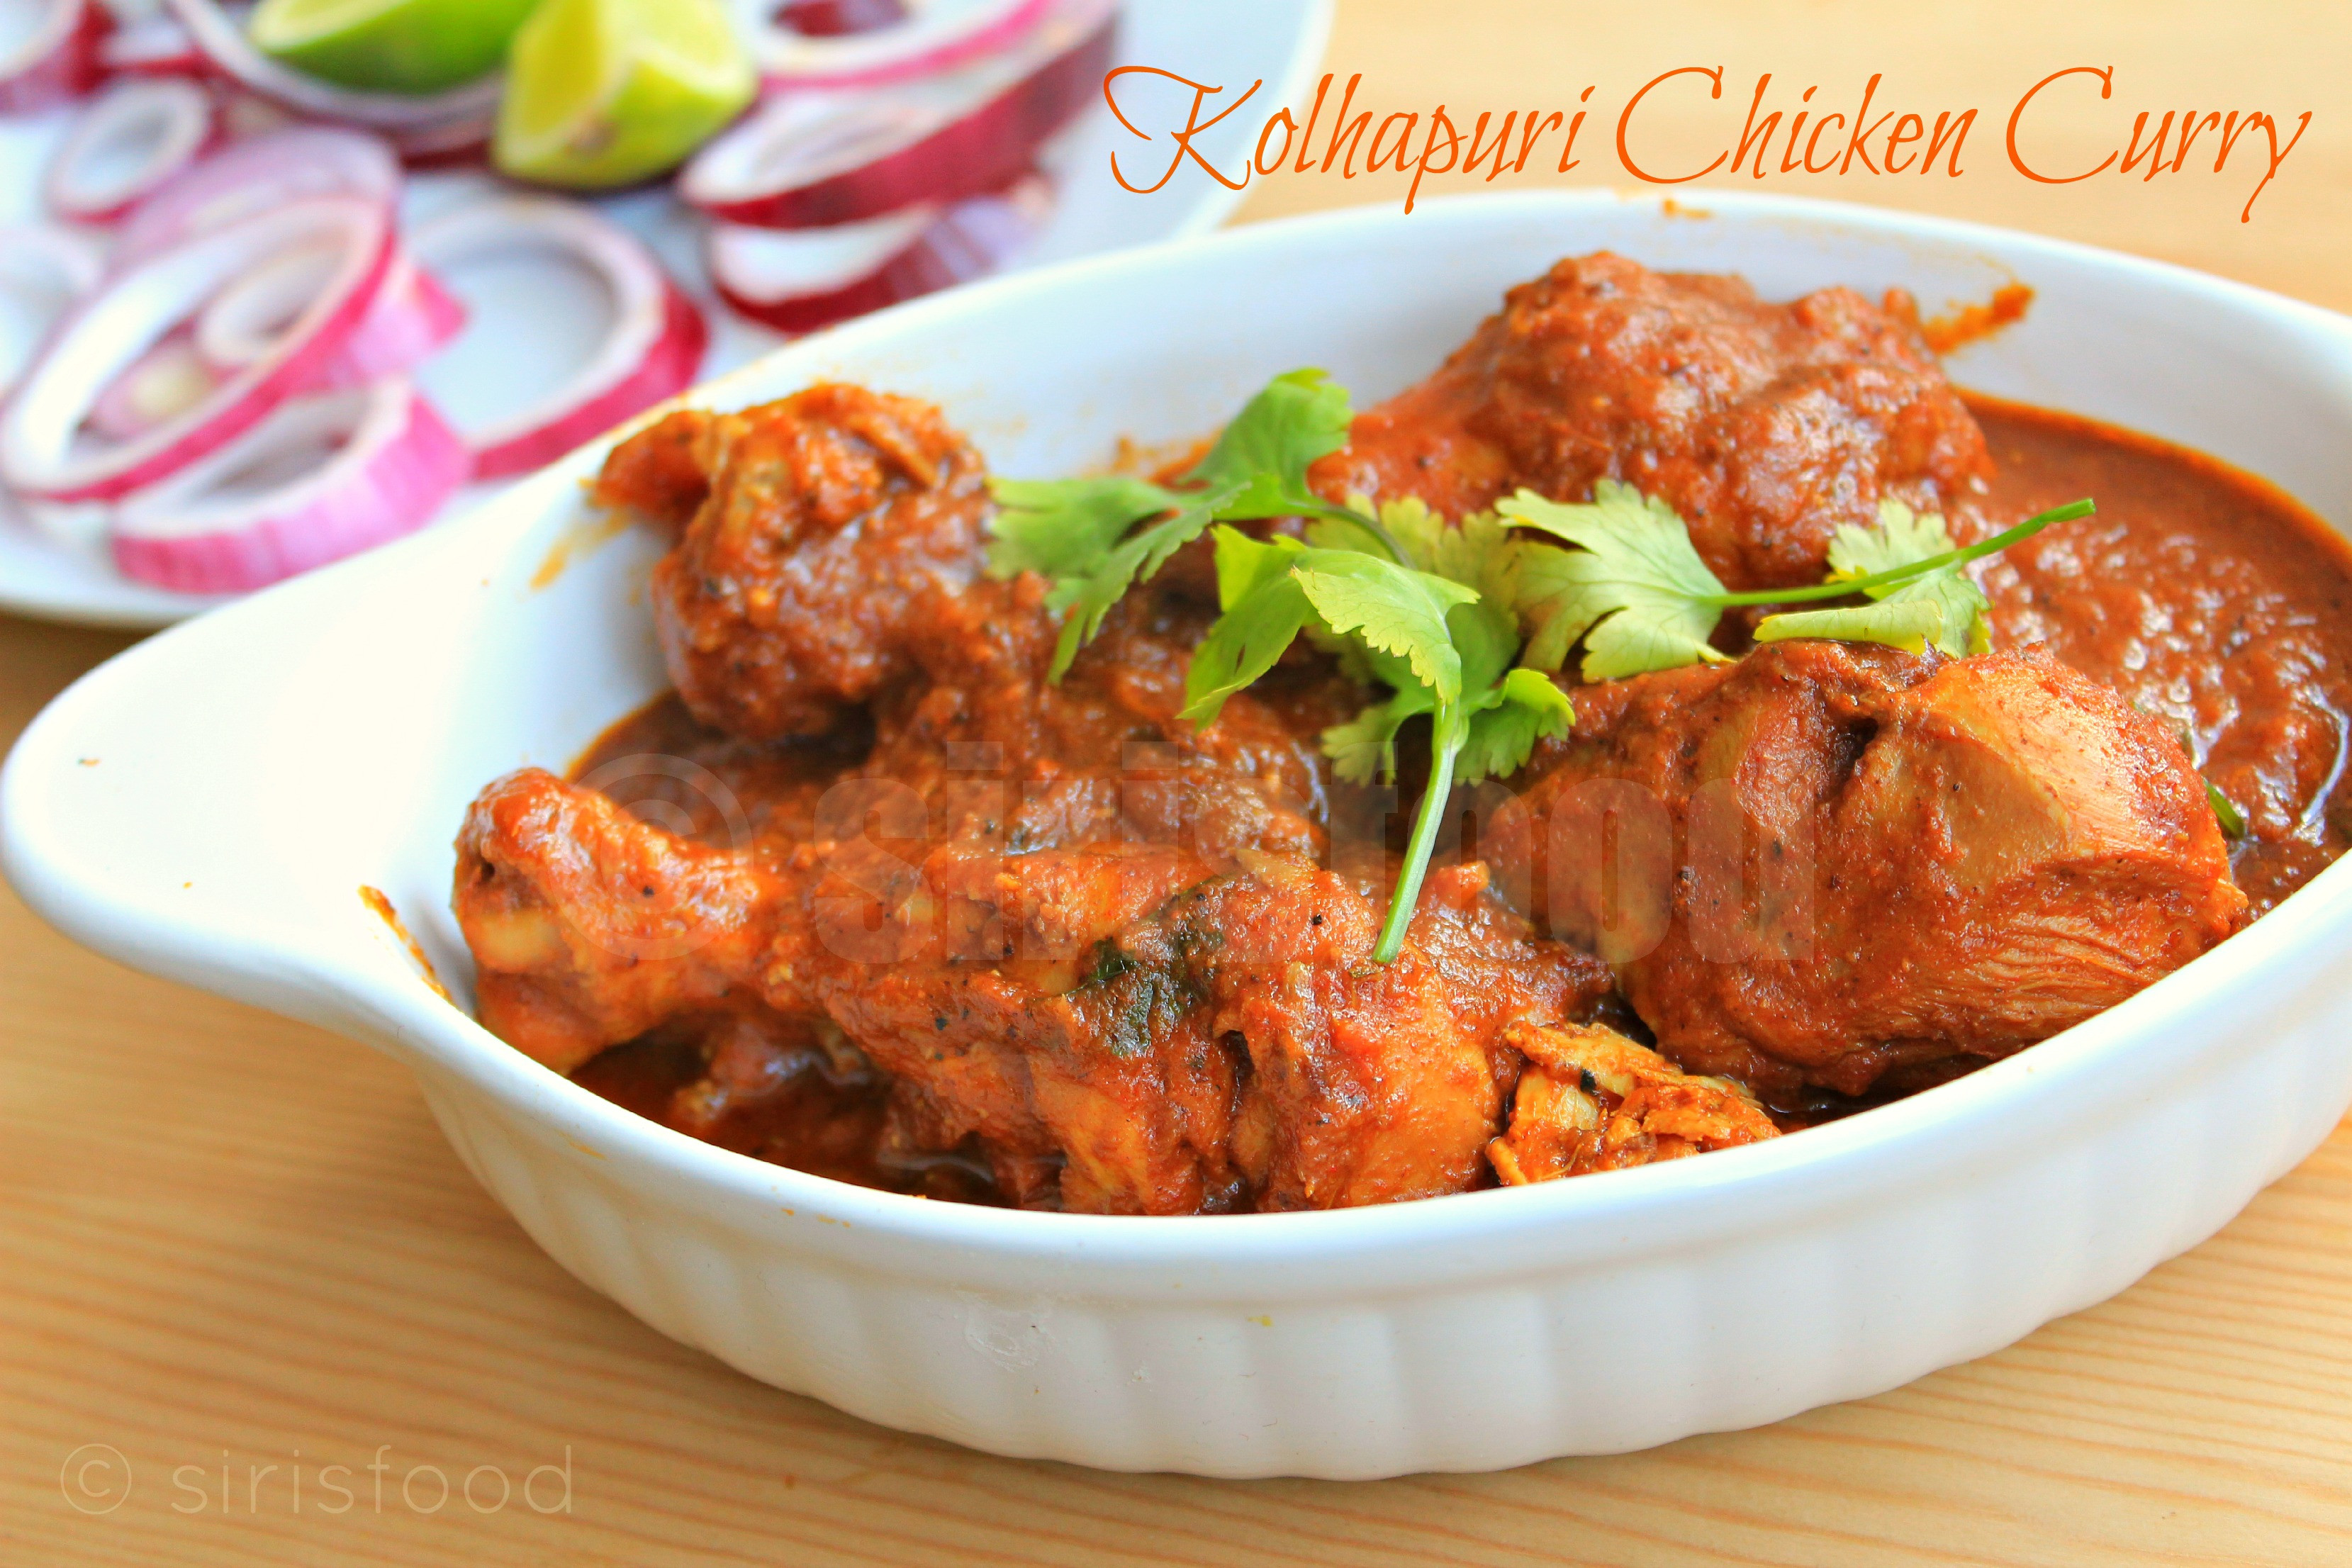 Chicken Indian Recipes  Kolhapuri Chicken Curry Indian Chicken Recipes Sirisfood